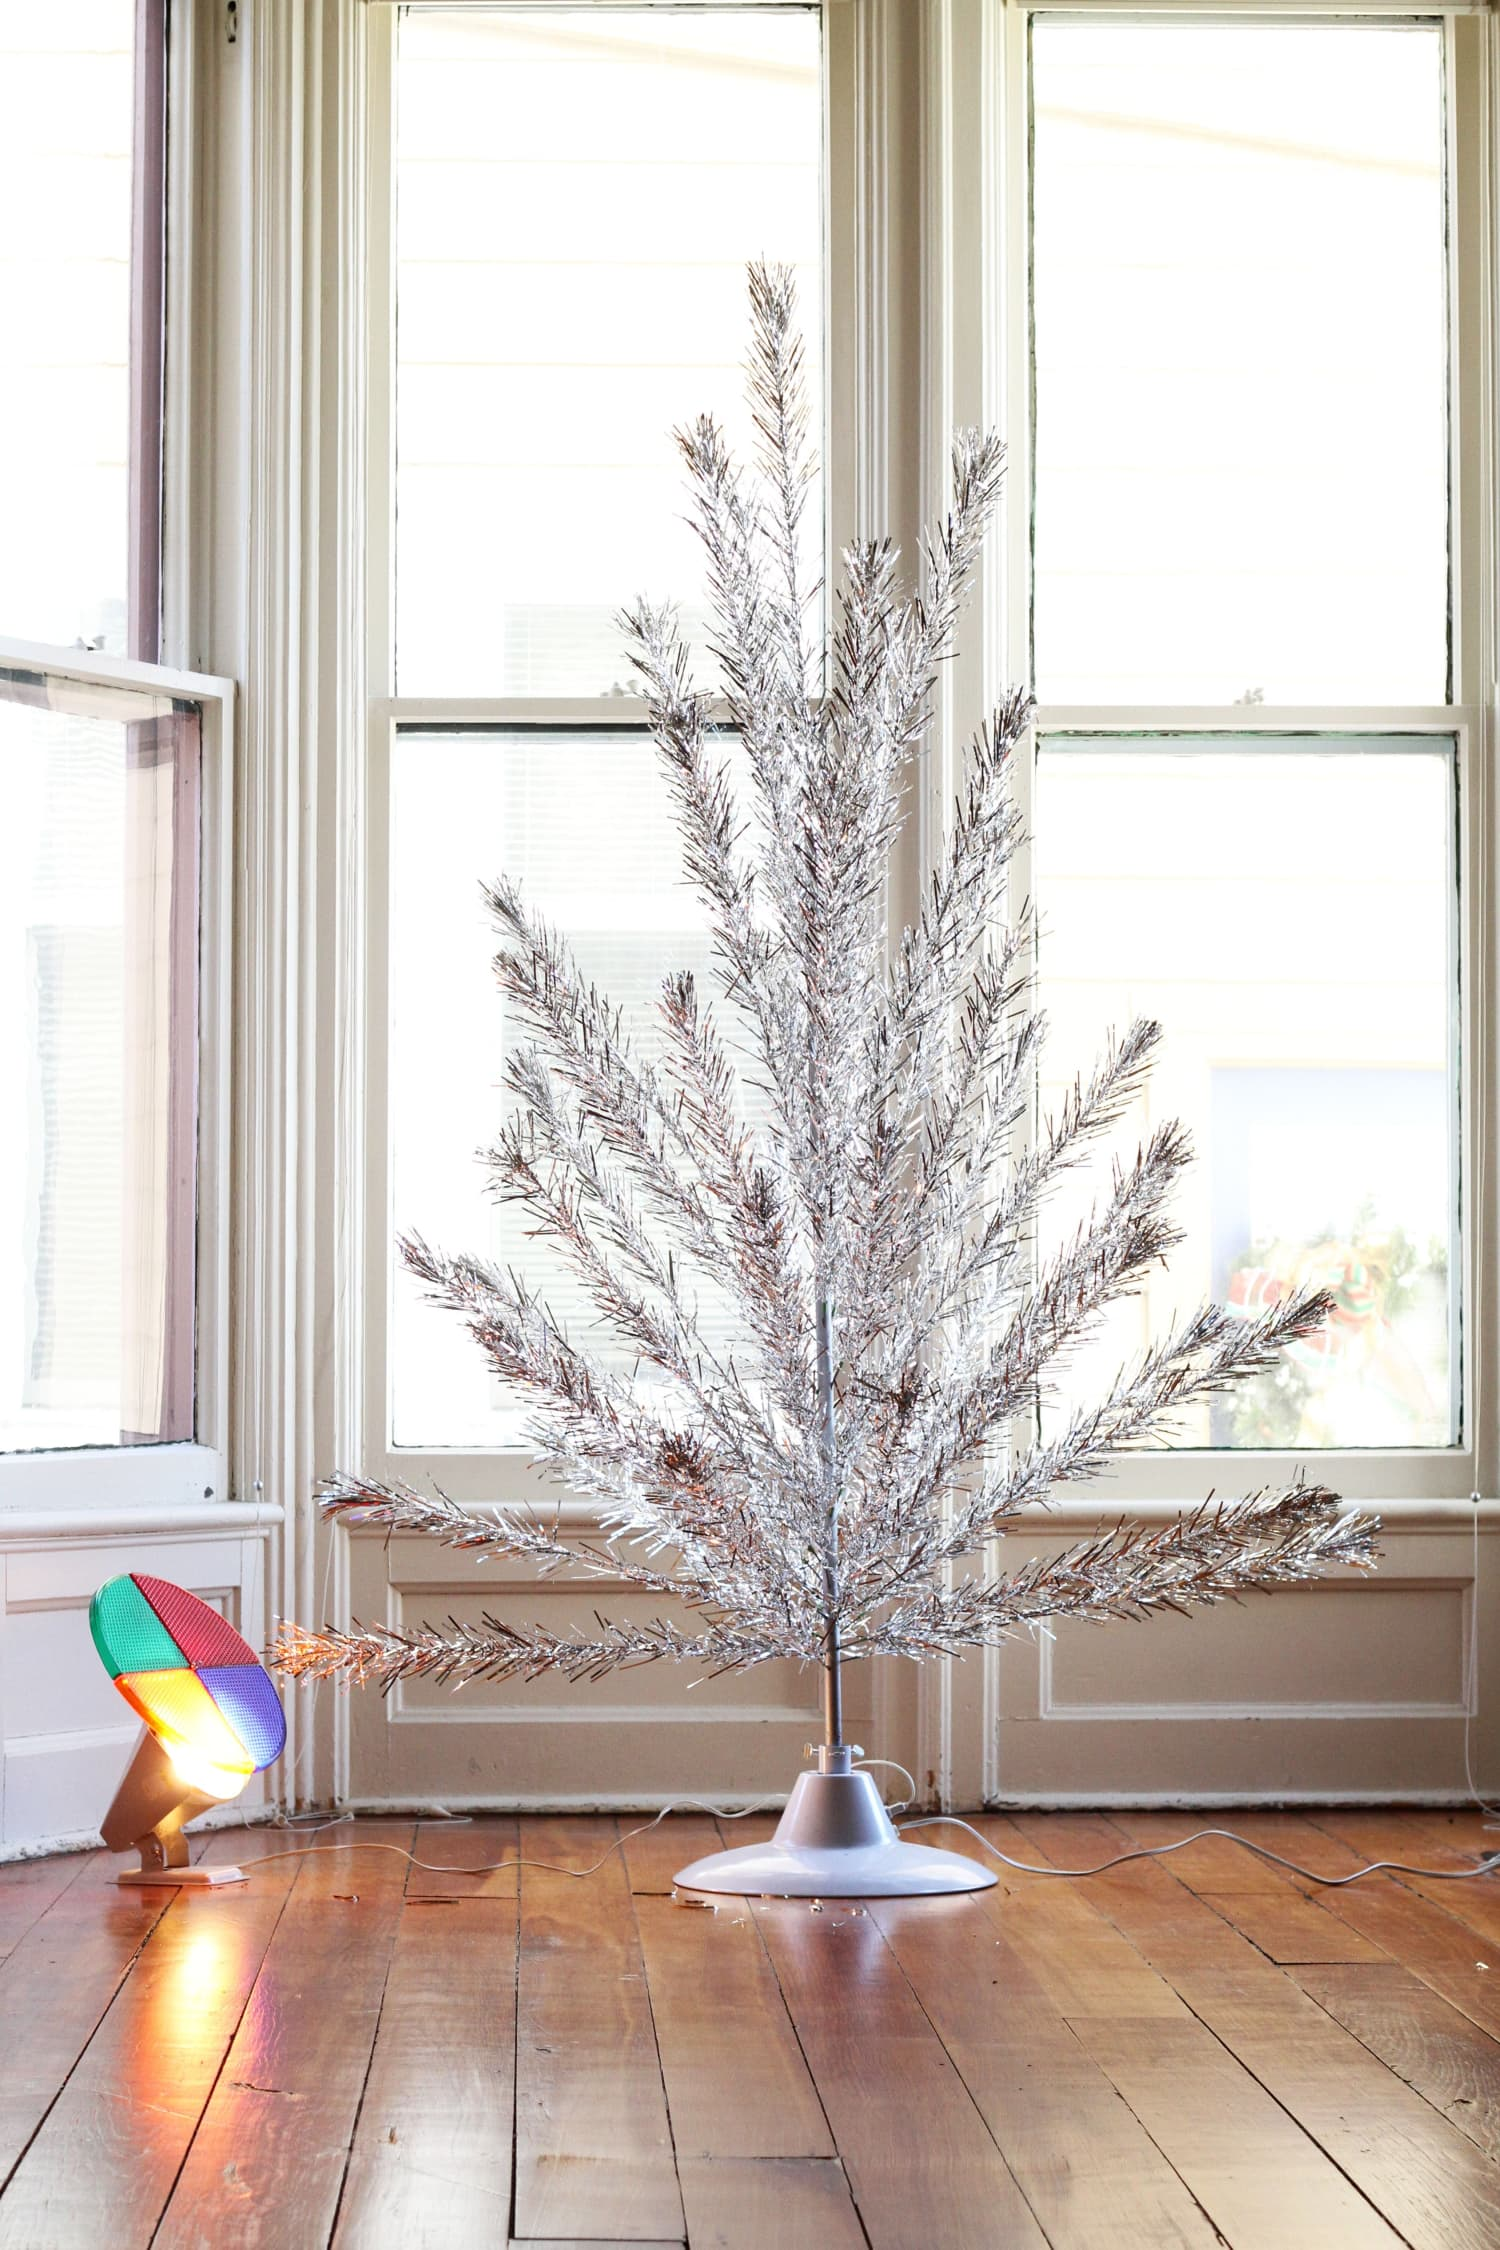 Get Rid of Christmas Clutter: 11 Things to Toss Right Now